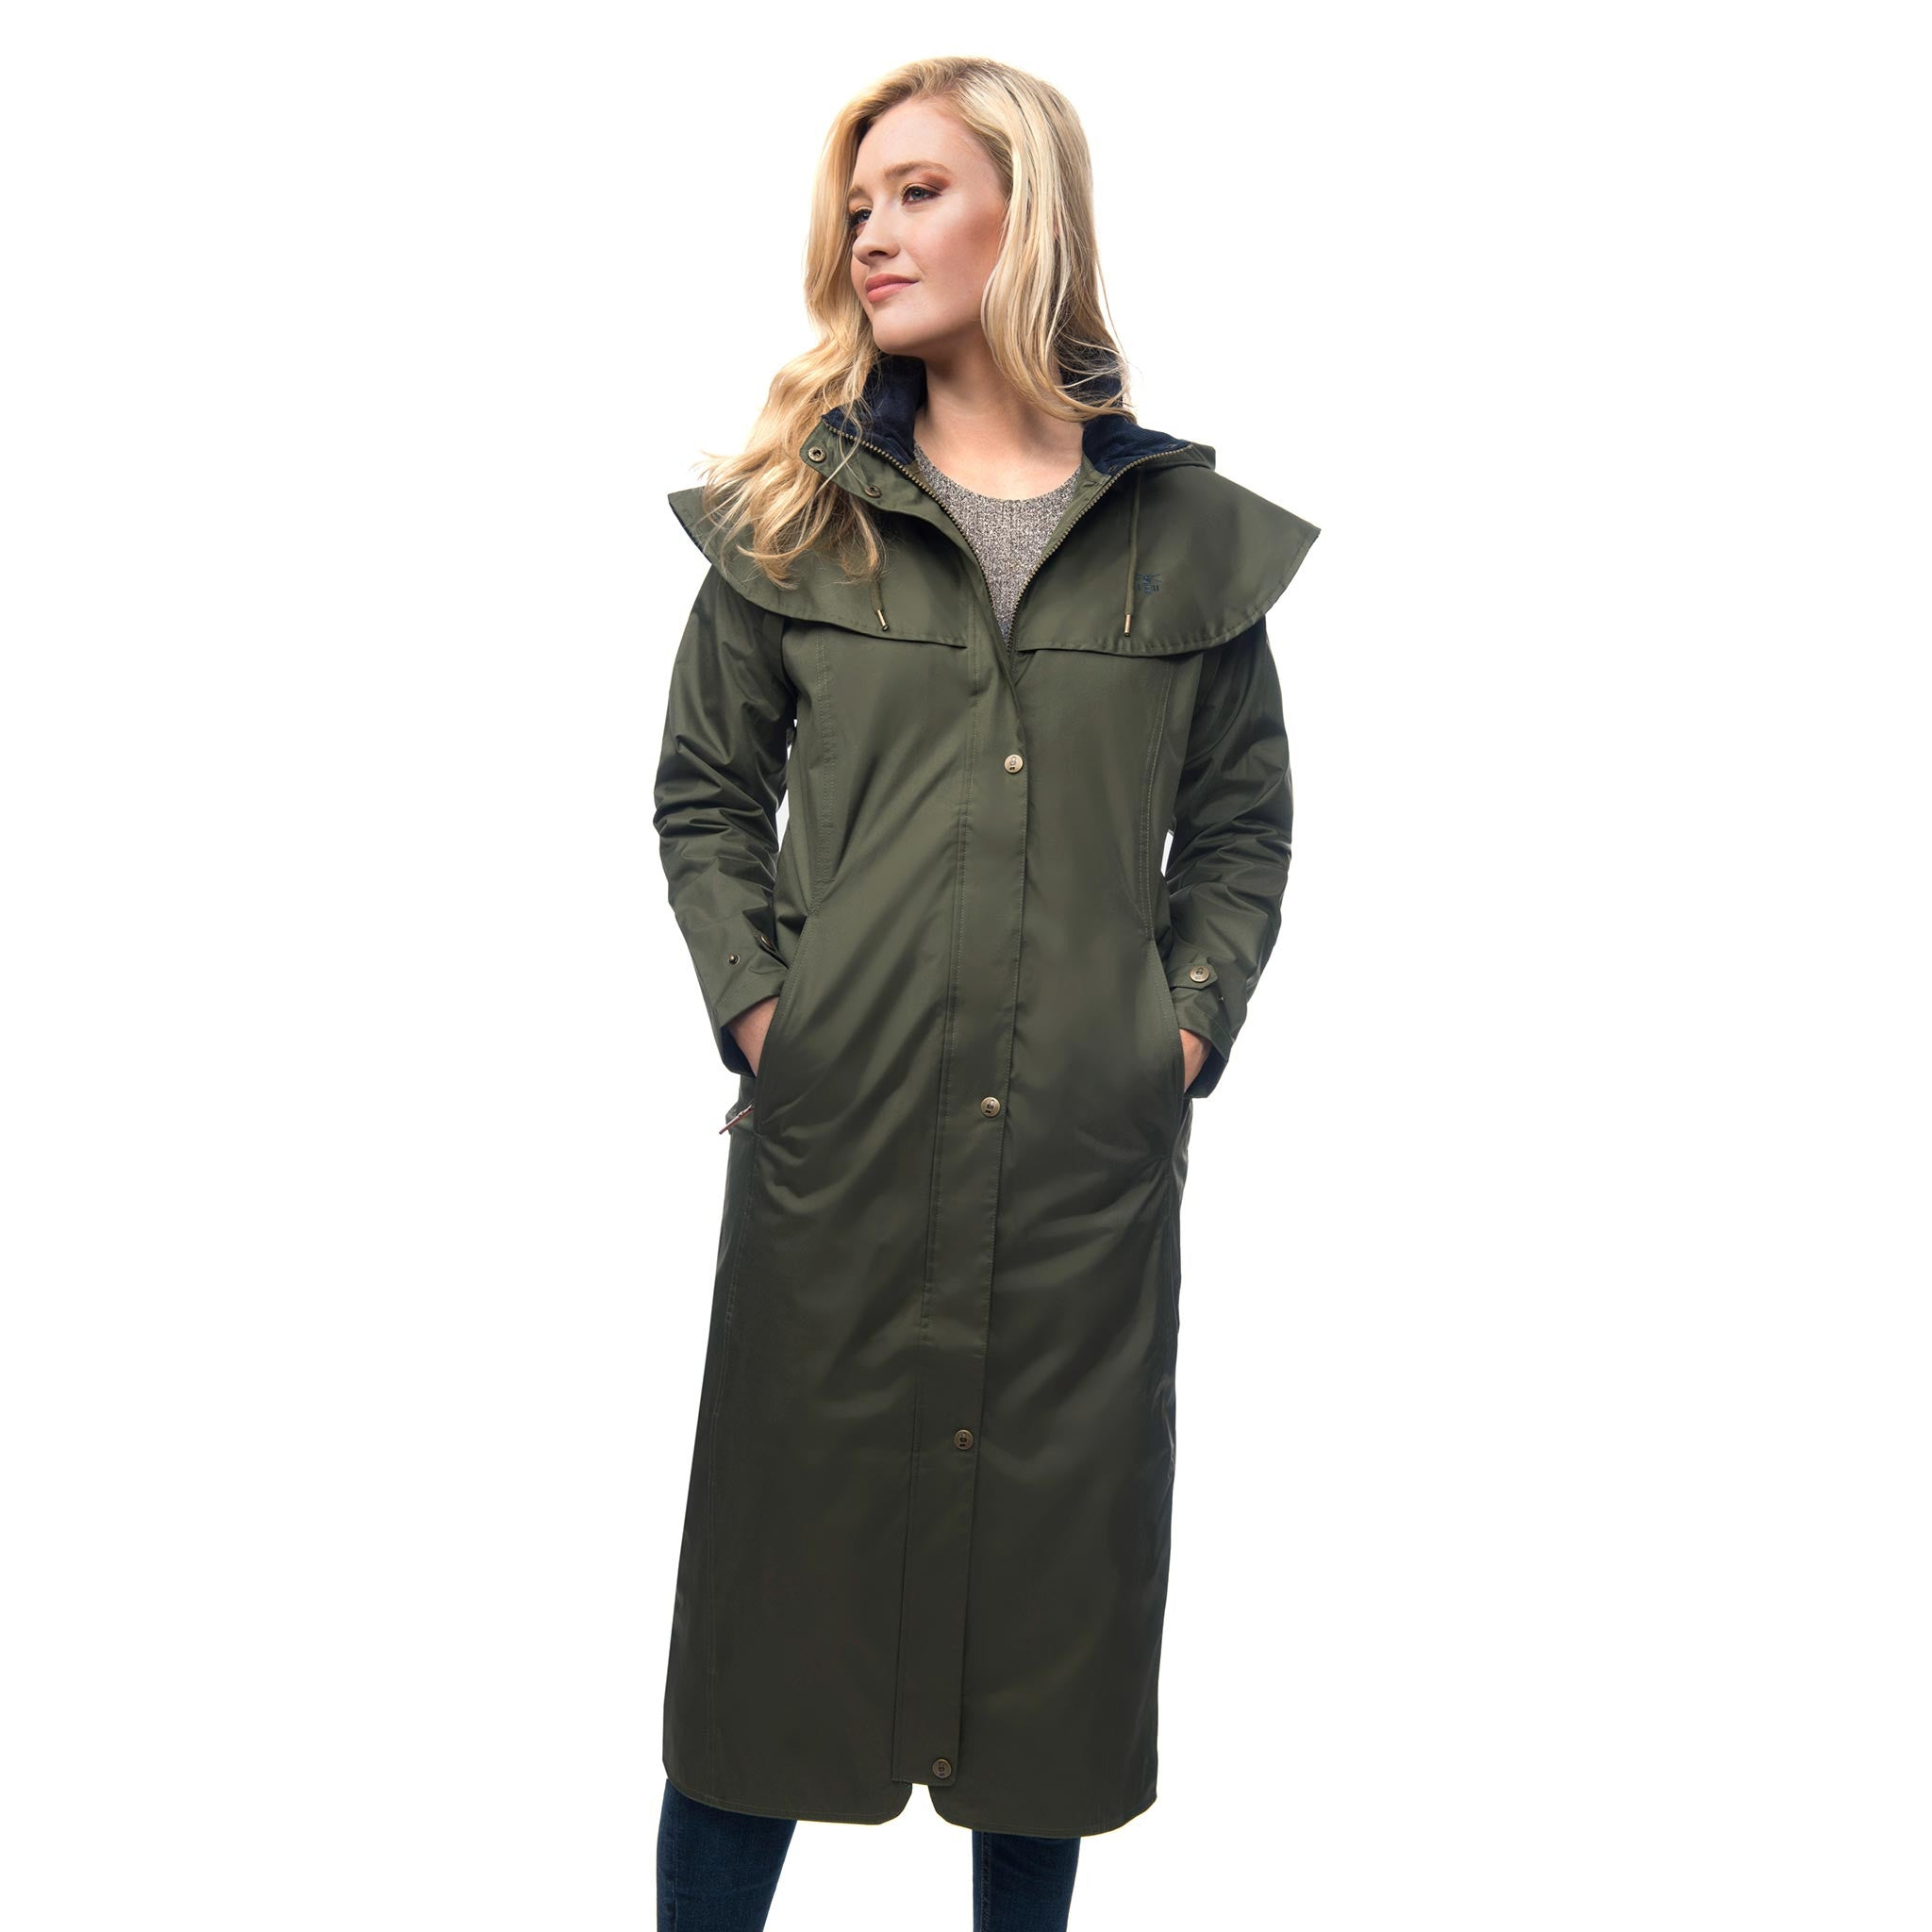 Lighthouse Womens Outback Full Length Waterproof Raincoat in Green. Zipped and buttoned. Hands in pockets.